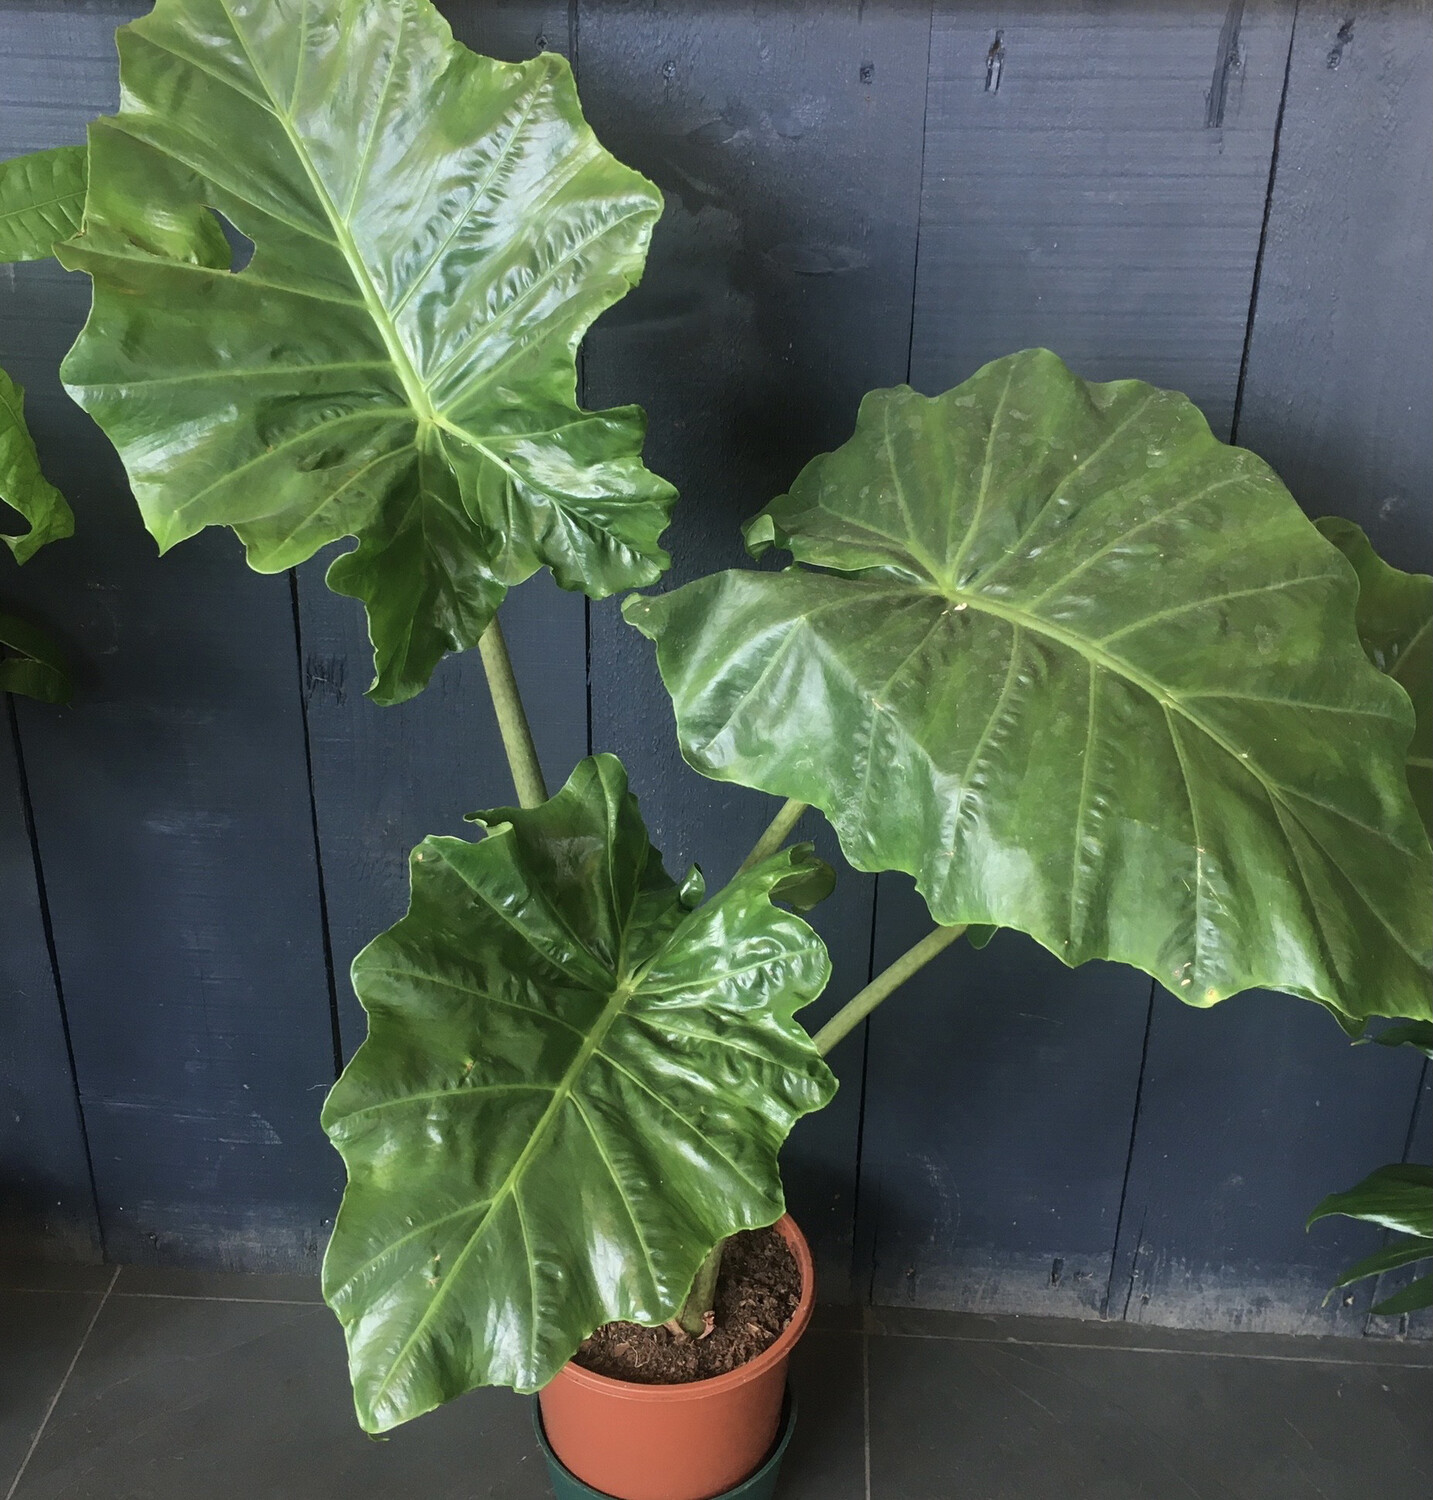 Alocasia Portodora - Upright Elephant Ear